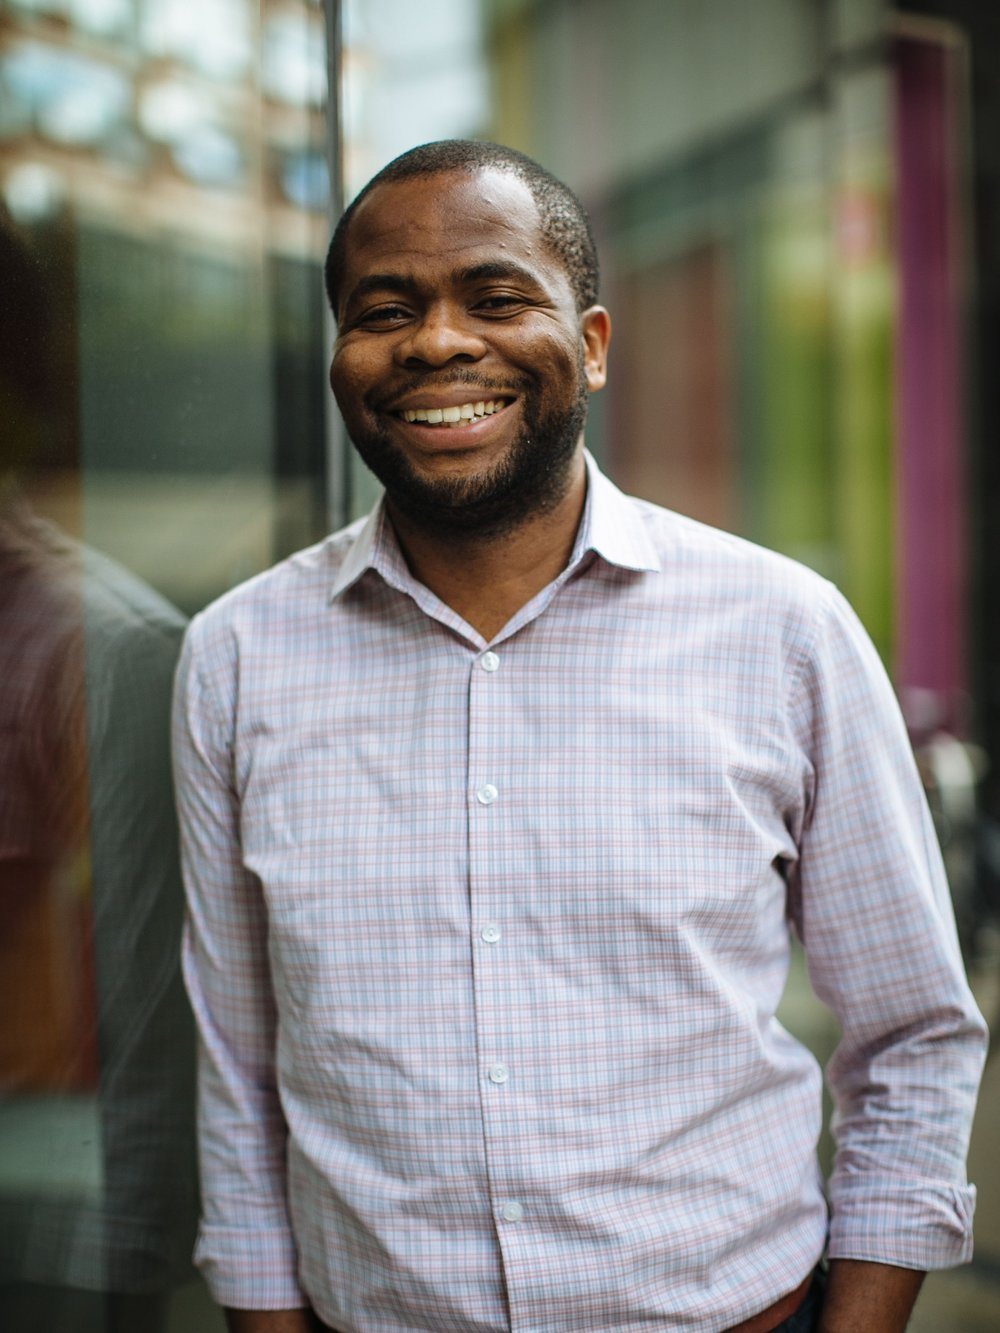 Dr Fola Adeleke - Living in: Johannesburg, South AfricaNationality: Nigerian